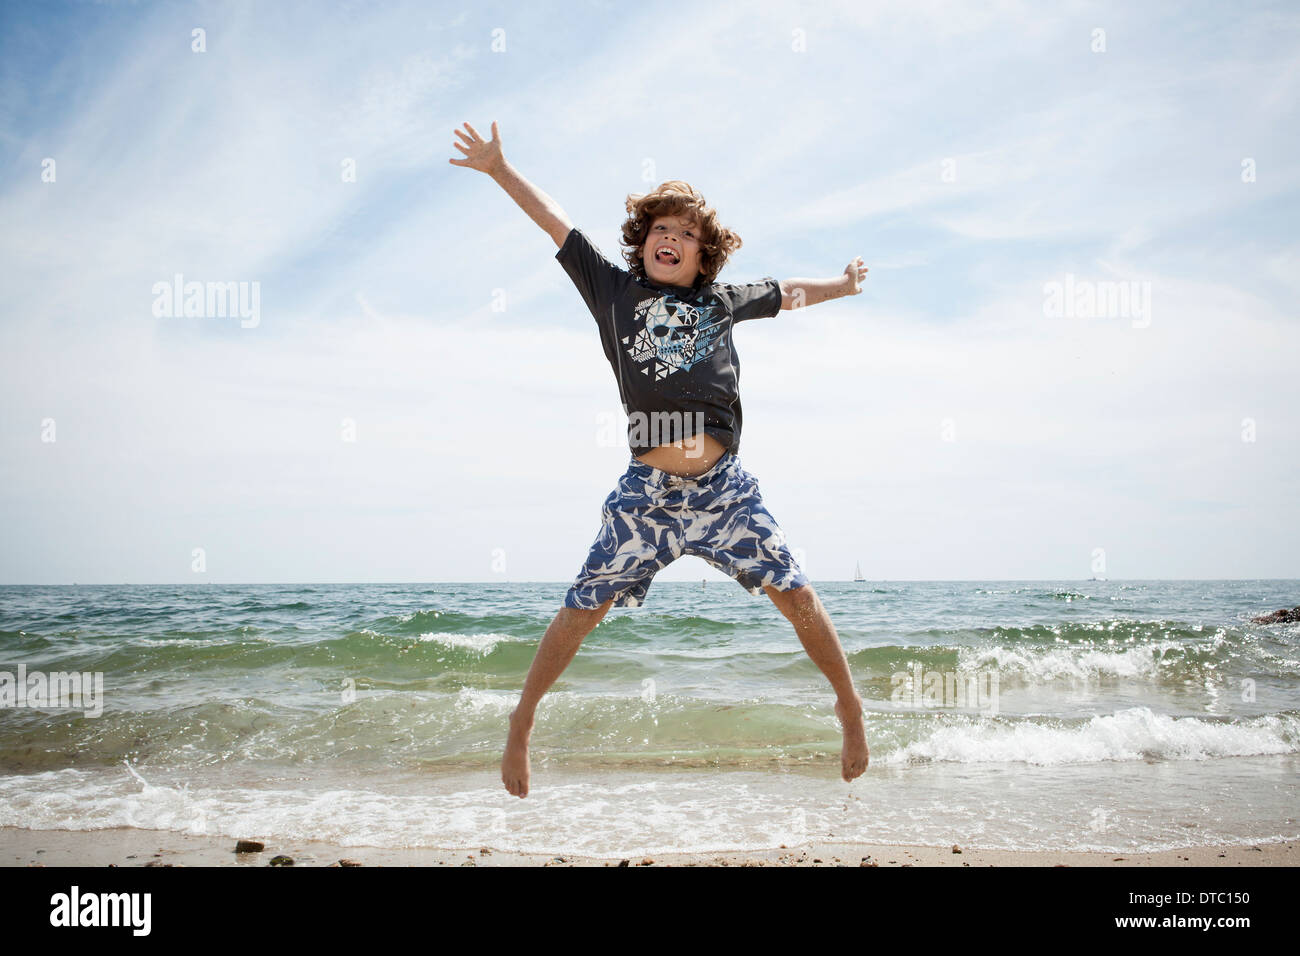 Informal portrait of jumping boy on beach at Falmouth, Massachusetts, USA - Stock Image